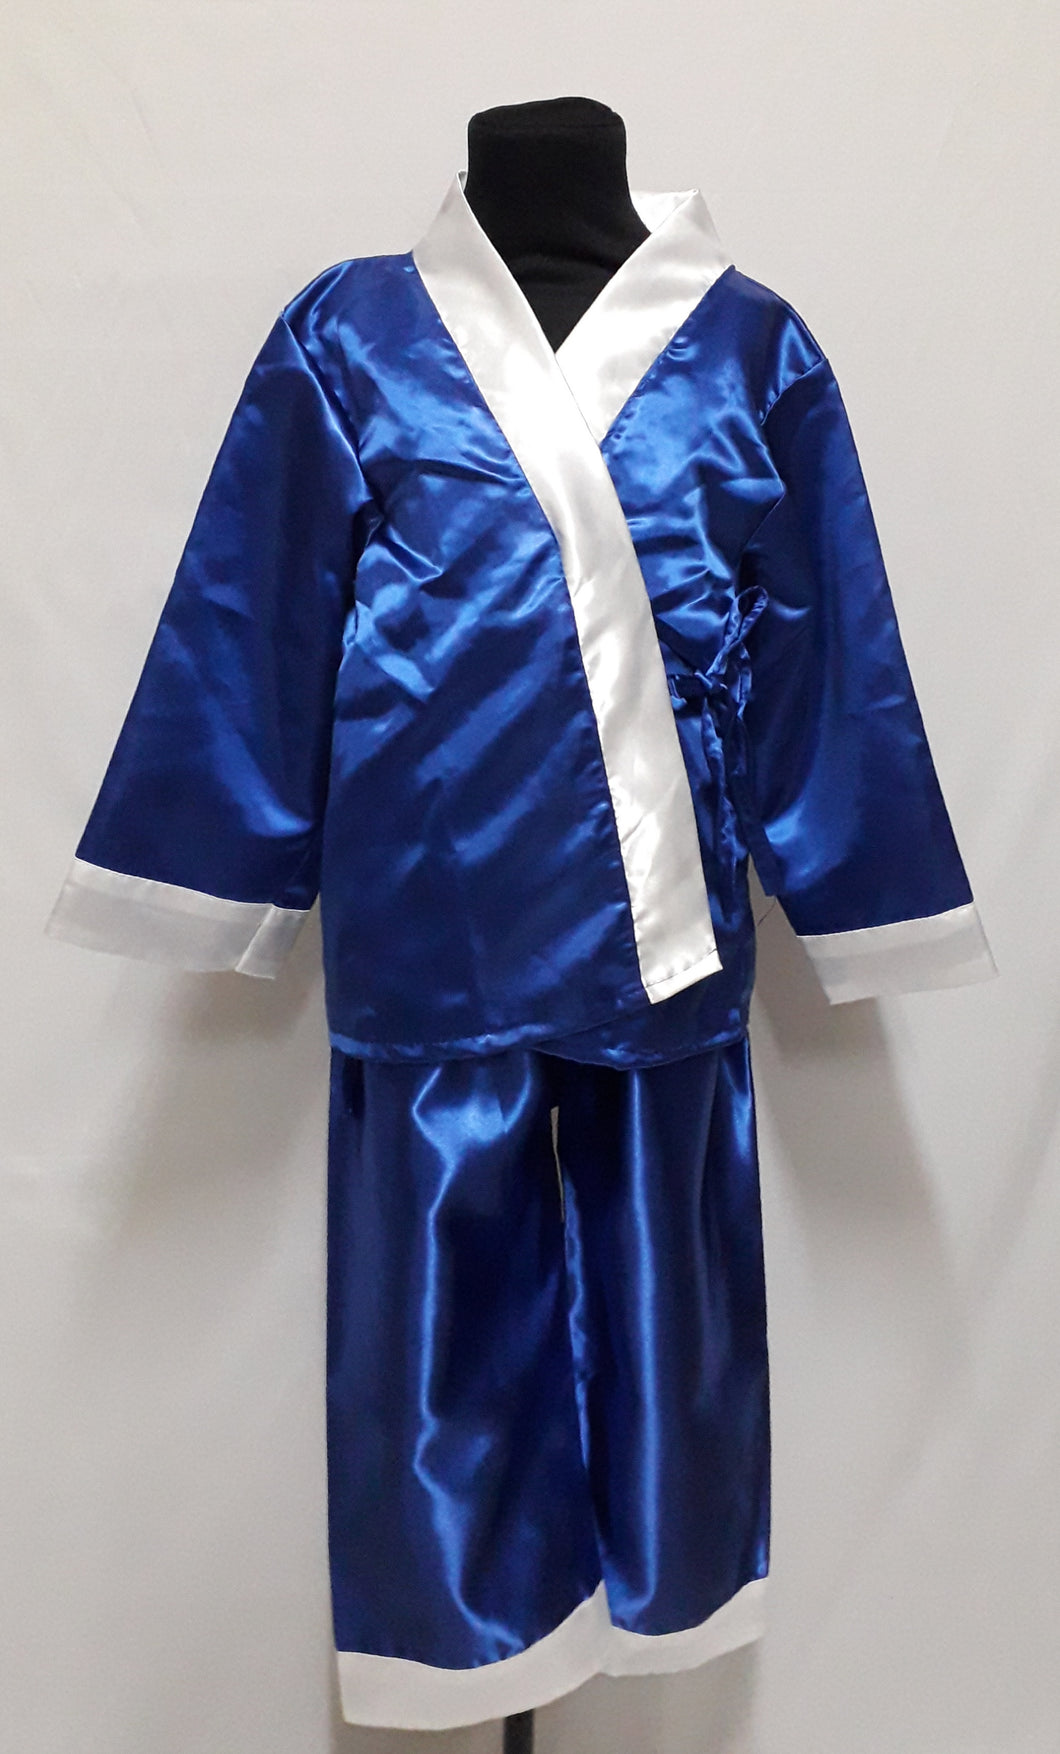 Japanese Boy Costume (Kids)